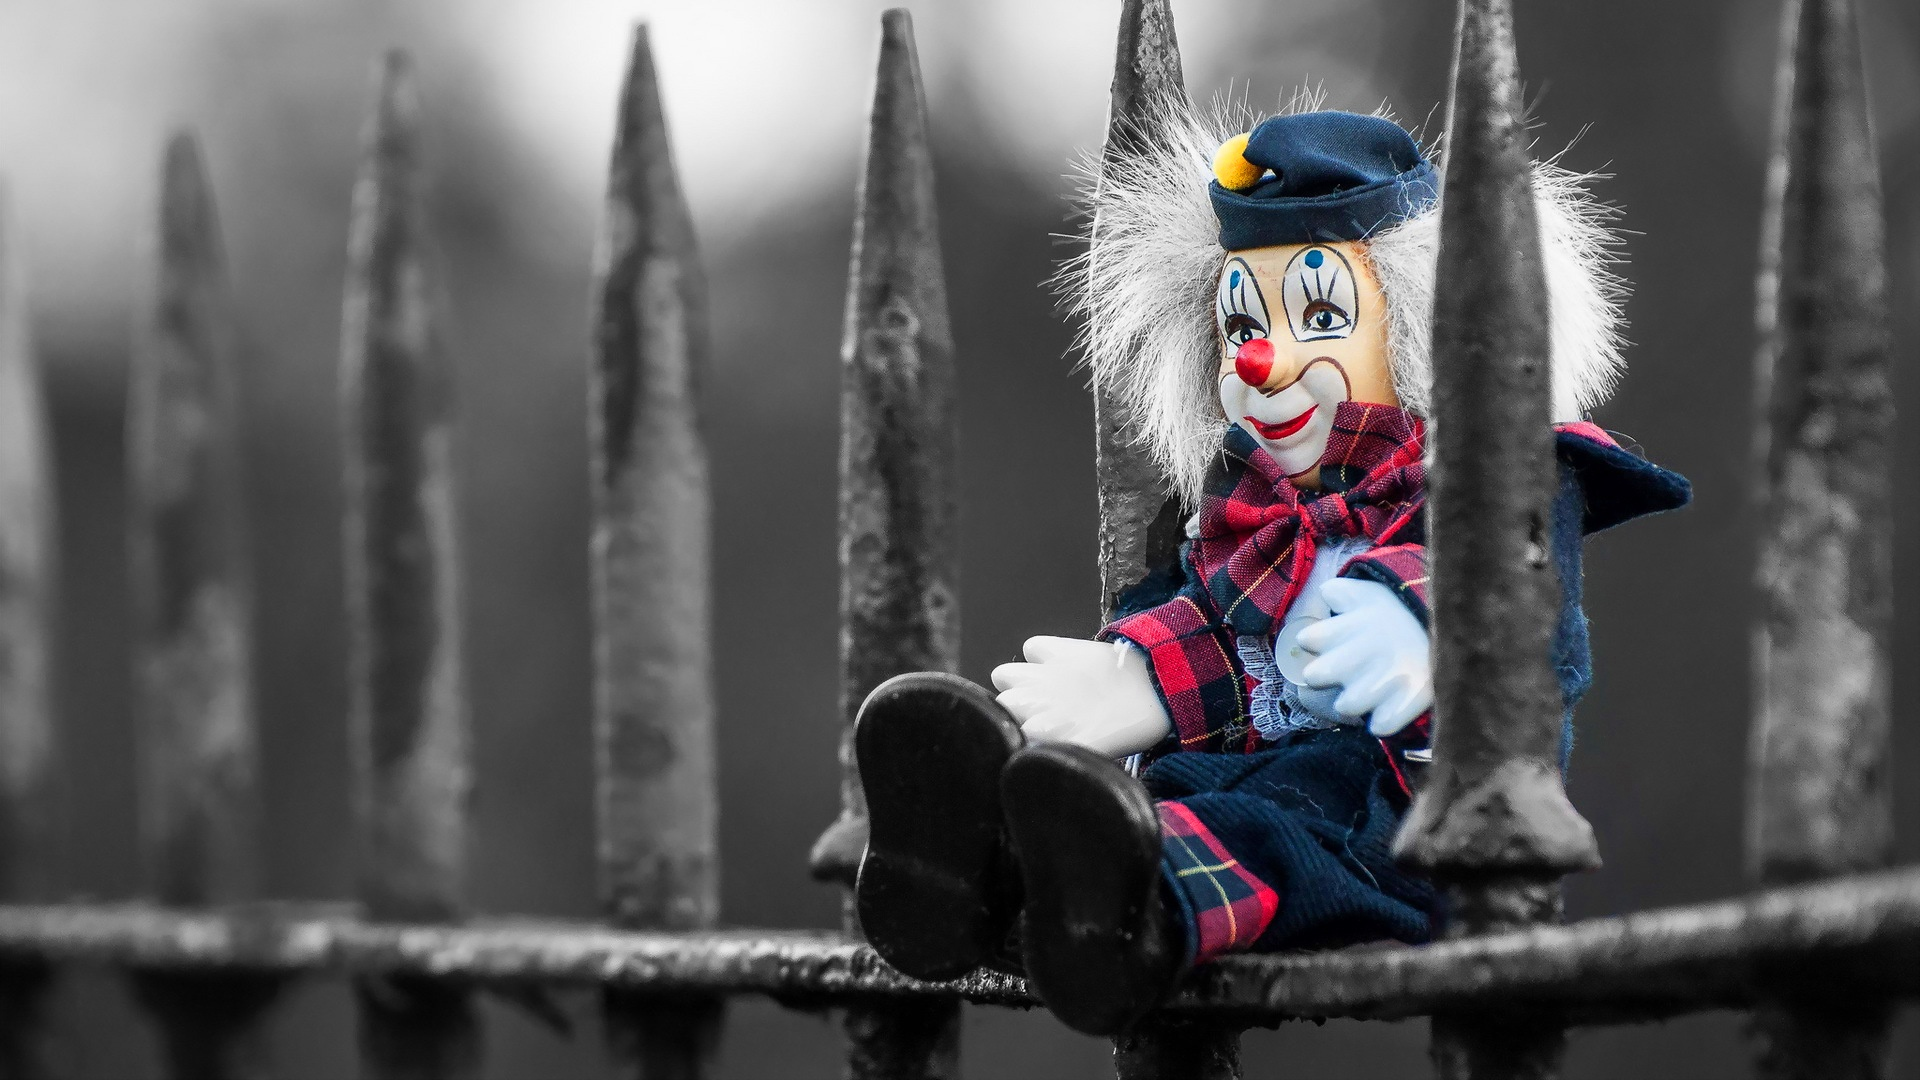 Toy clown on a fence hd wallpaper background image - Circus joker wallpaper ...